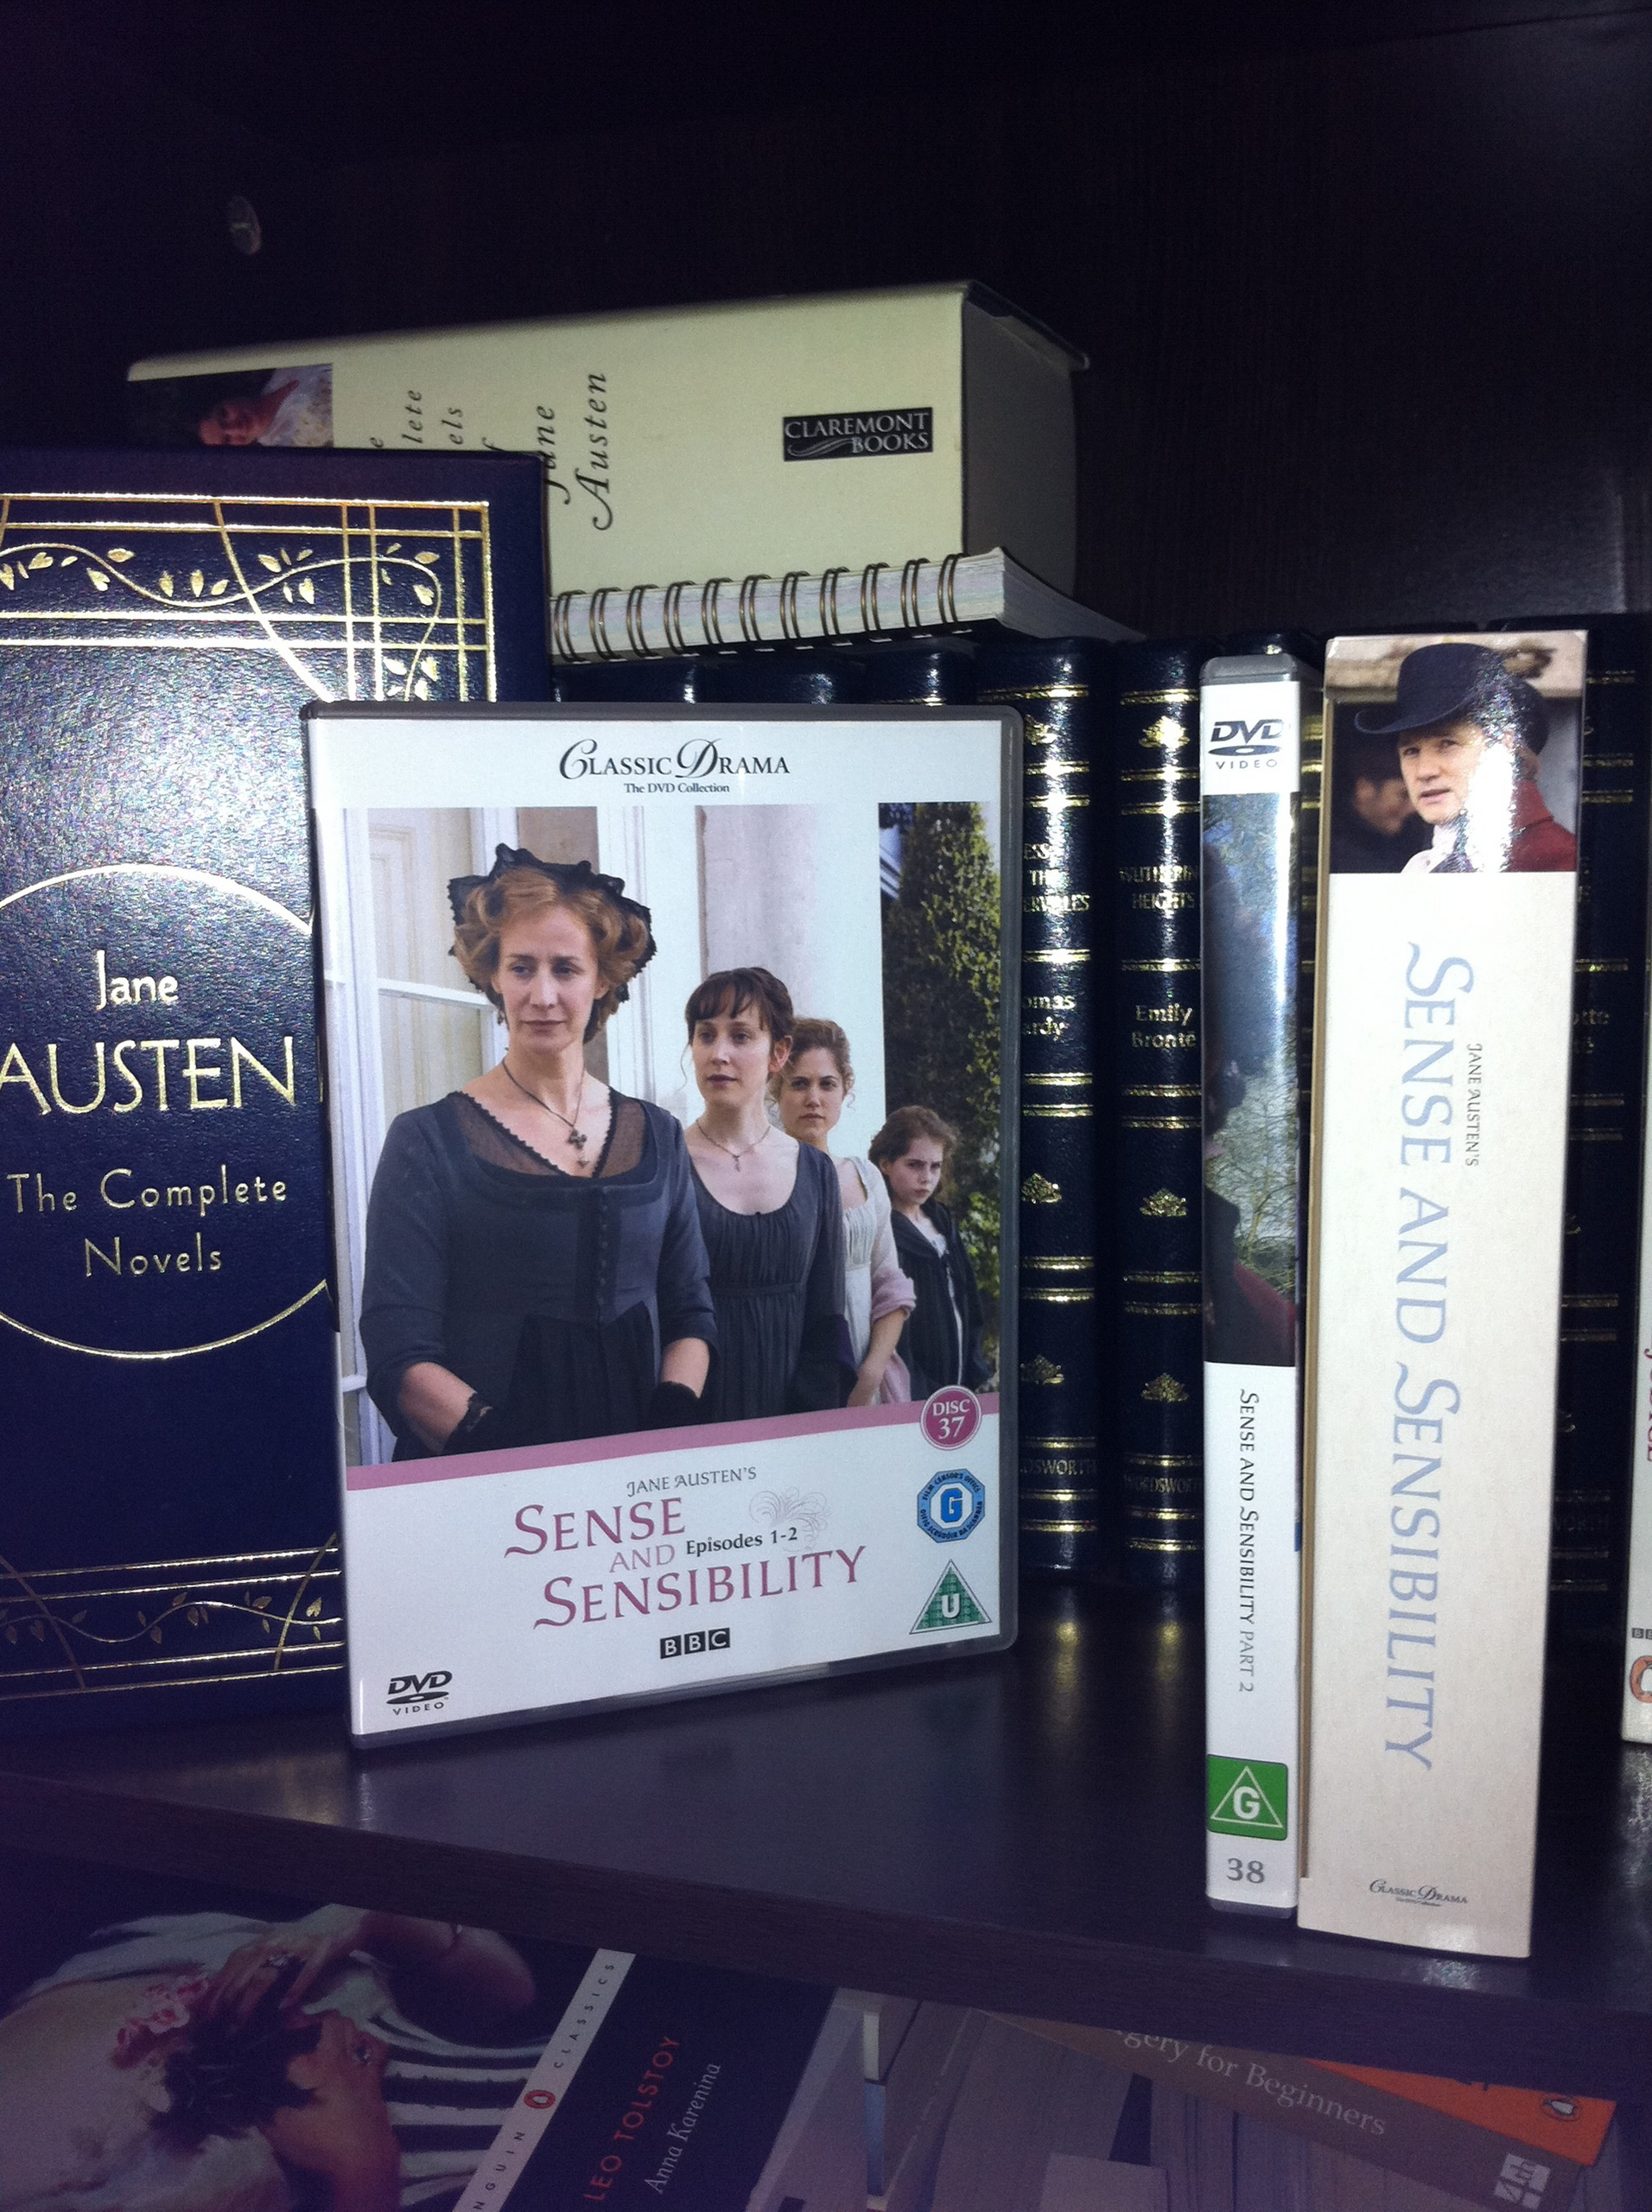 Sense and Sensibility 2008 BBC miniseries